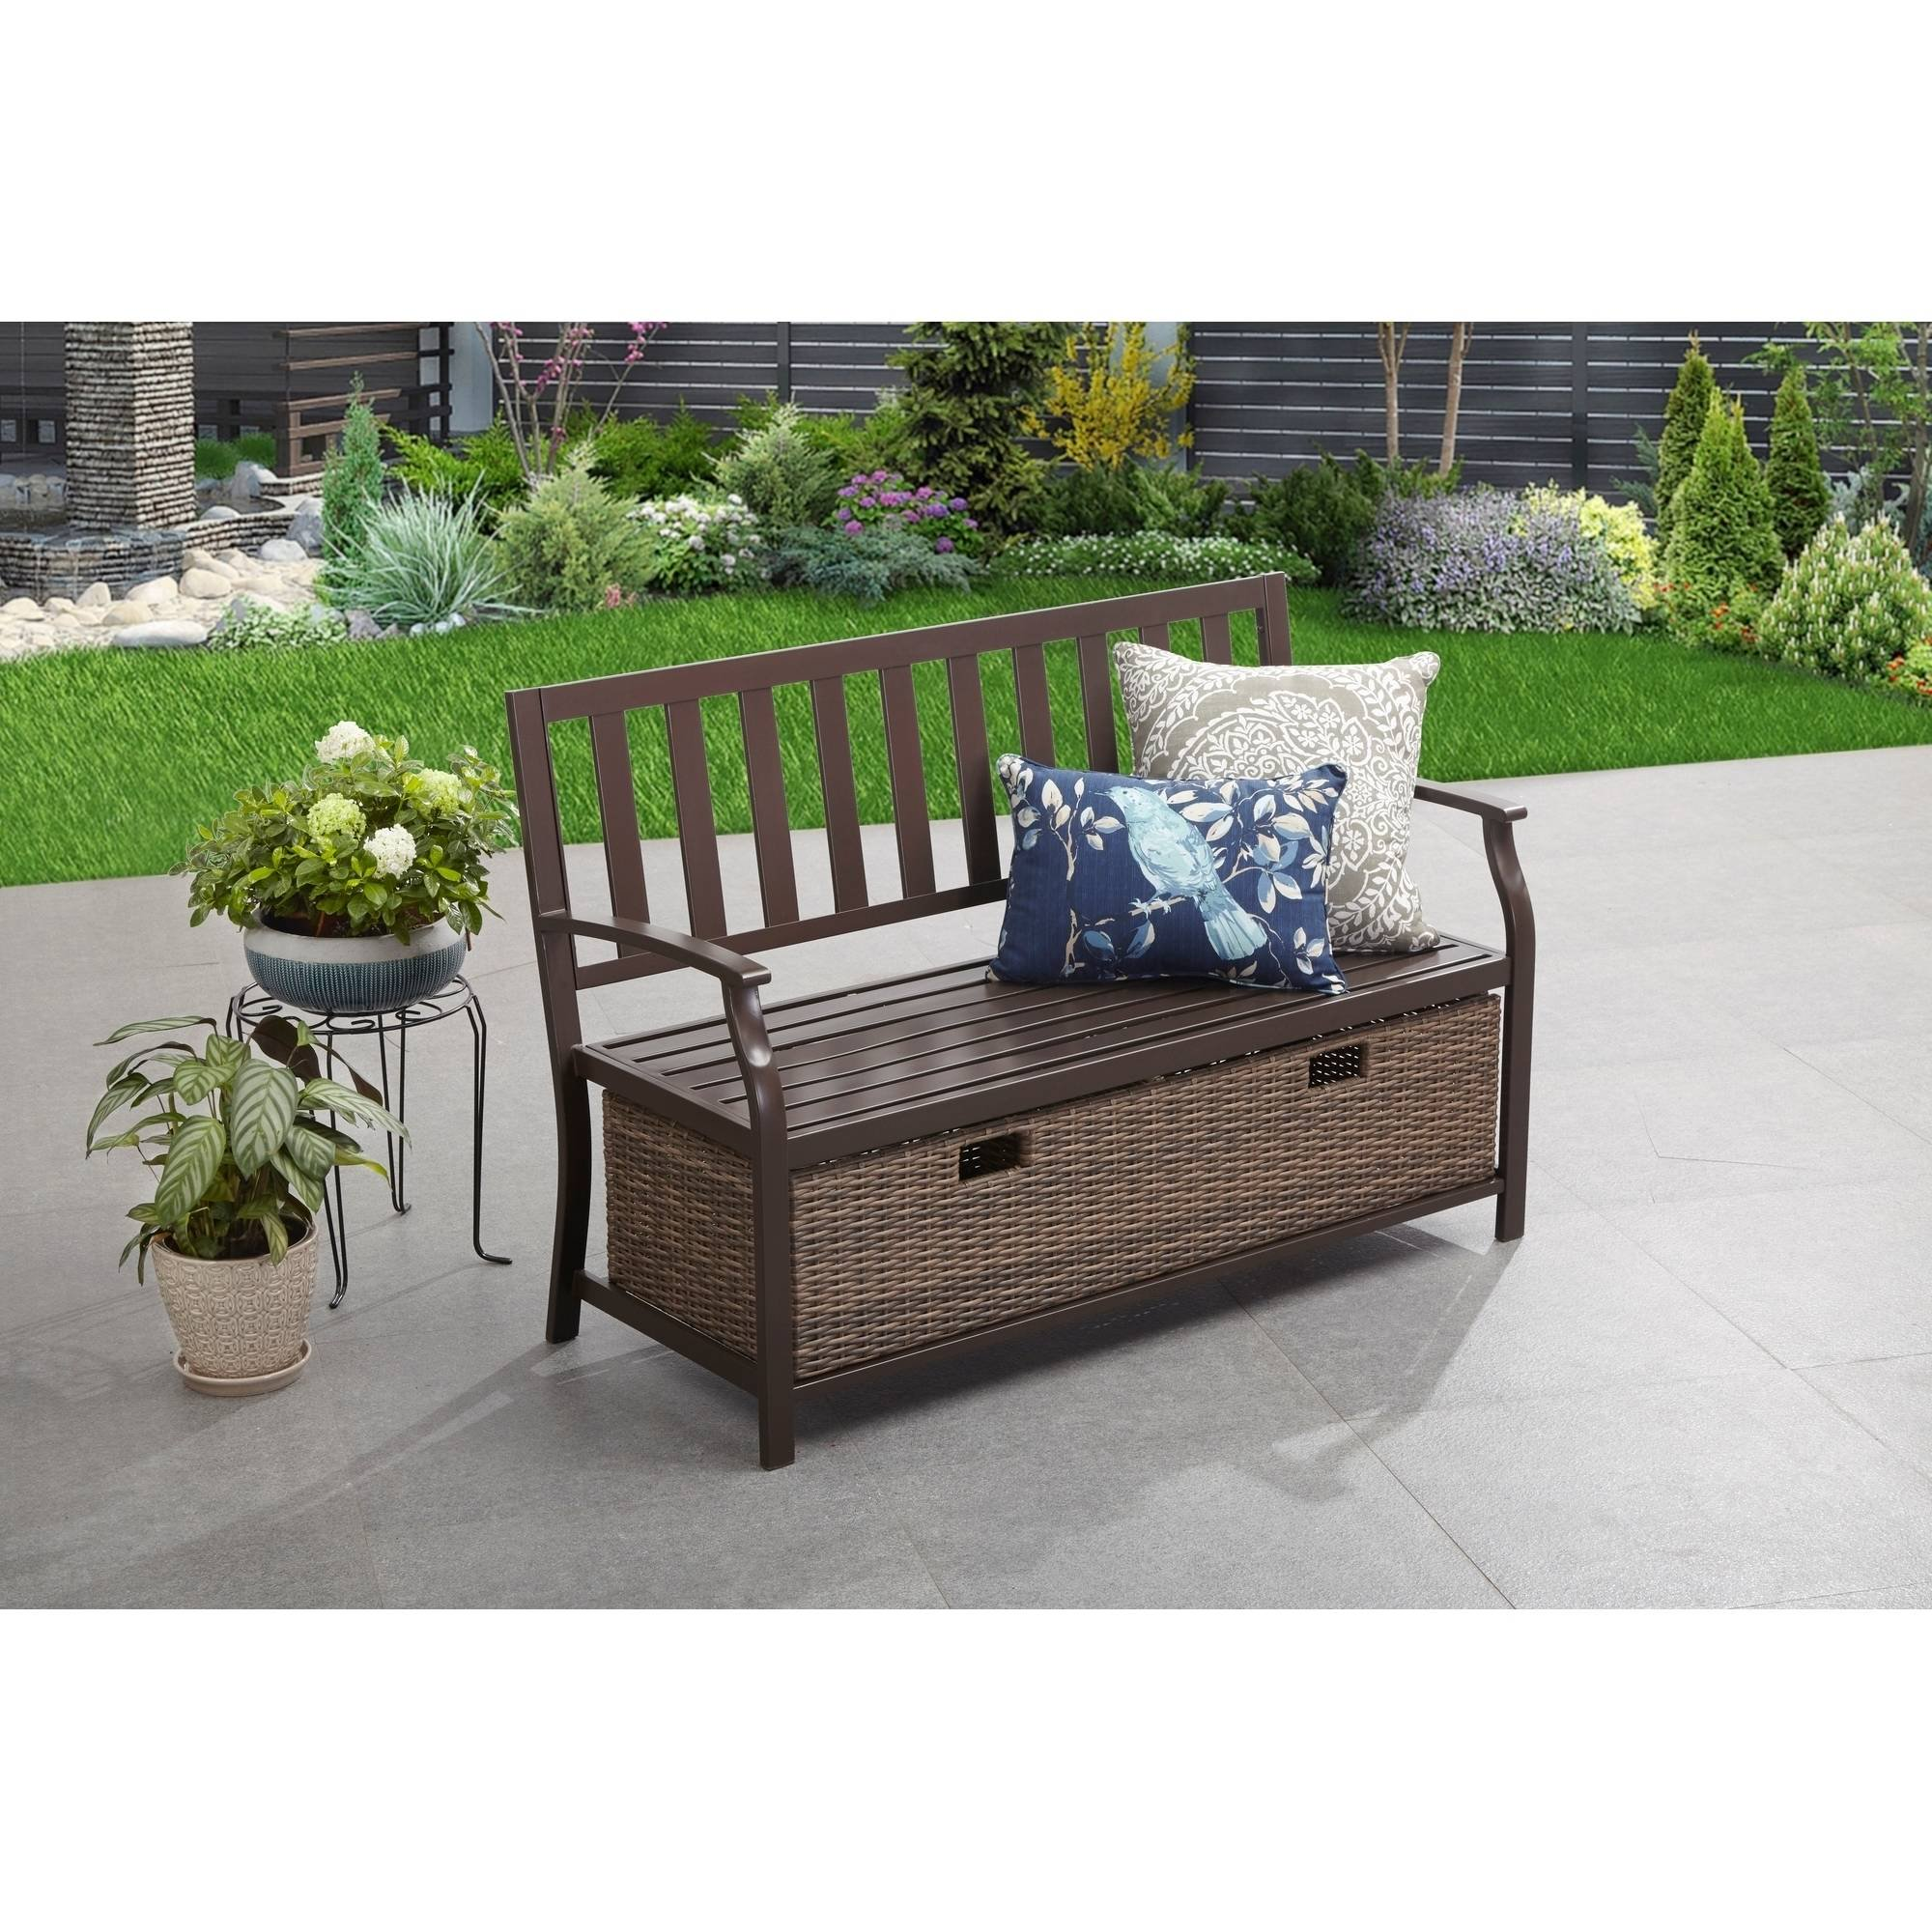 Better Homes U0026 Gardens Camrose Farmhouse Outdoor Bench With Wicker Storage  Box